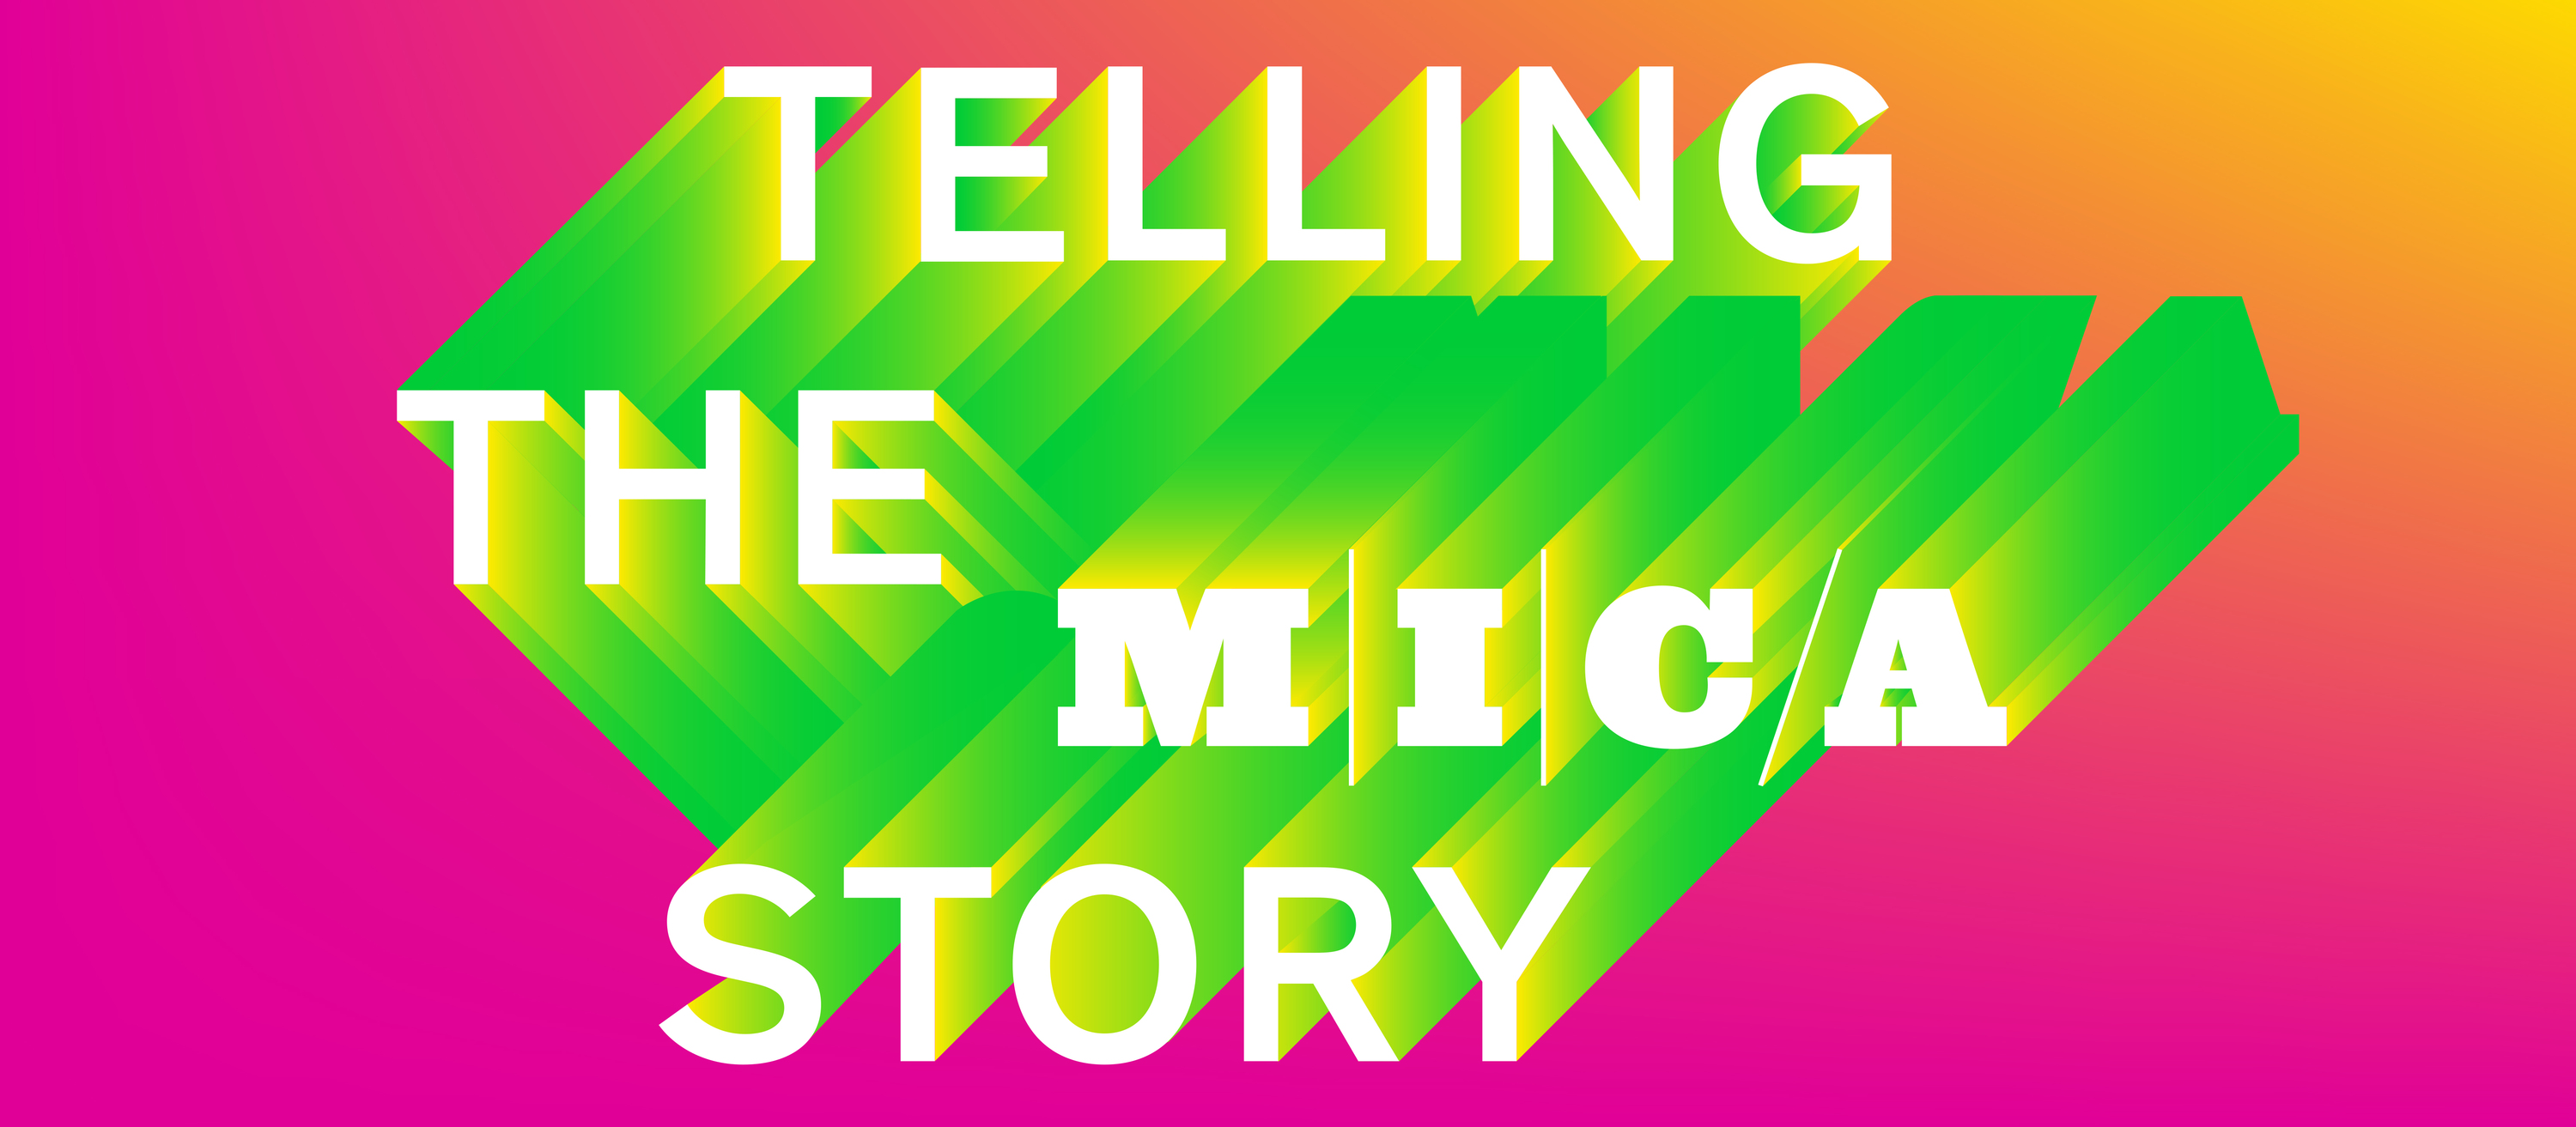 Telling mica story final